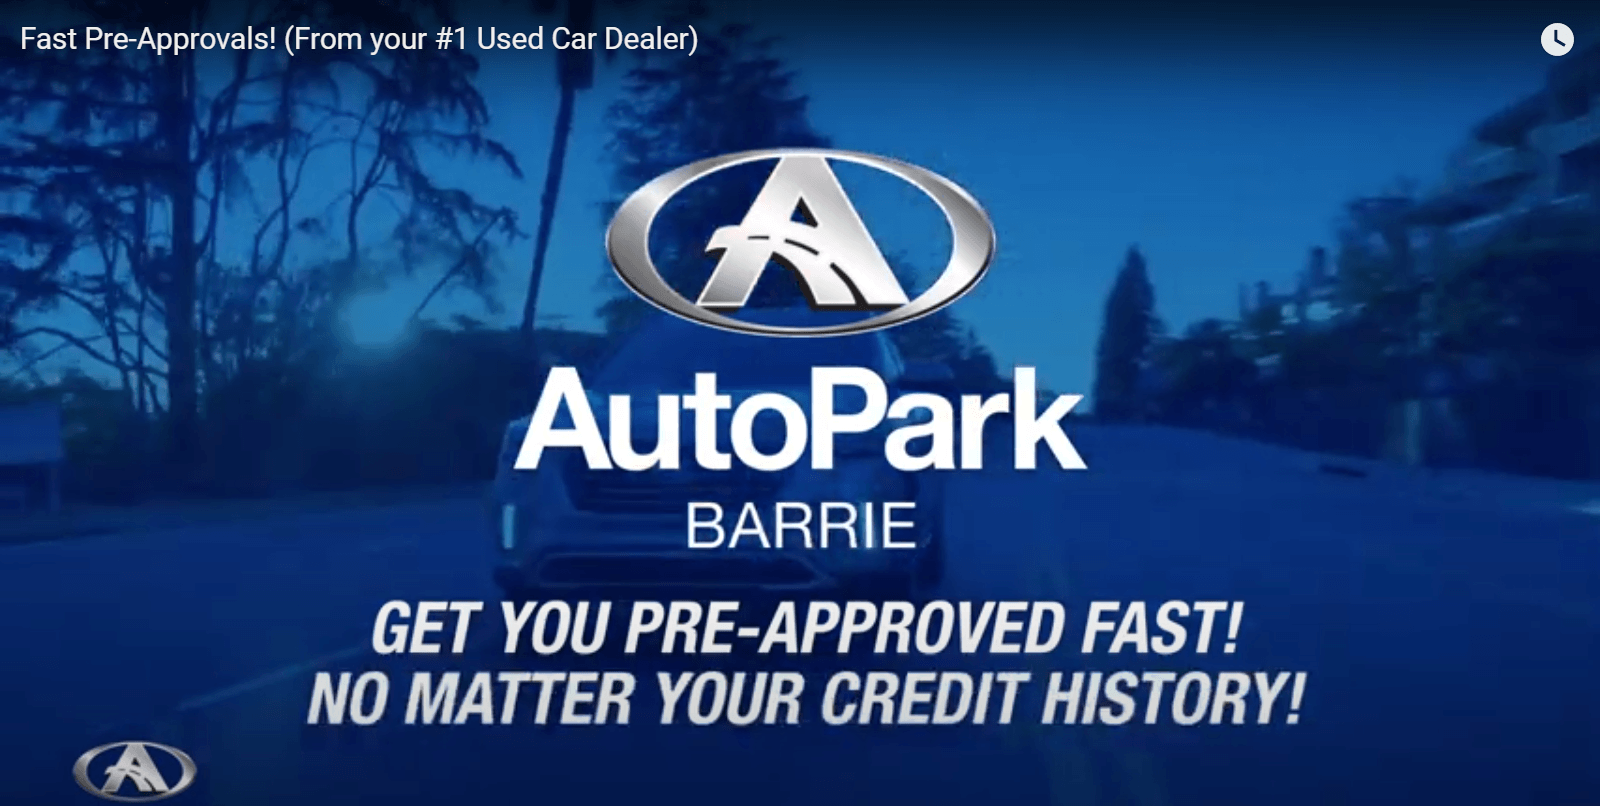 Fast_Pre_Approval_AutoPark_Barrie_Used_Car_Dealership_in_Barrie